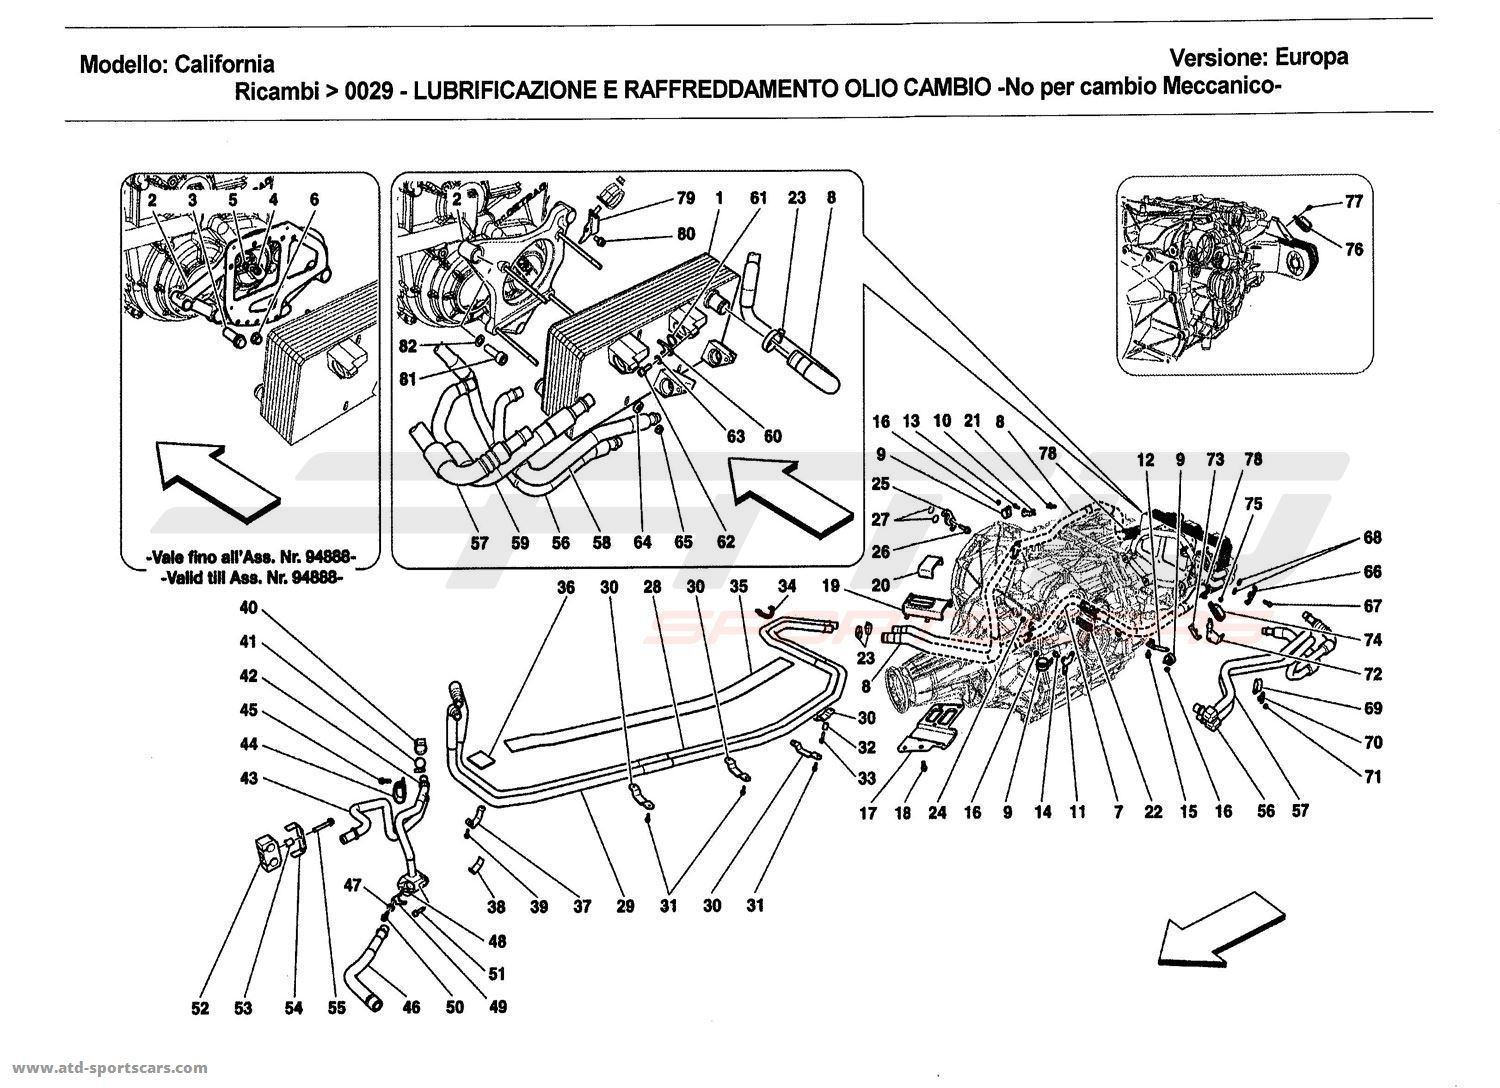 GEARBOX LUBRICATION AND COOLING CIRCUIT